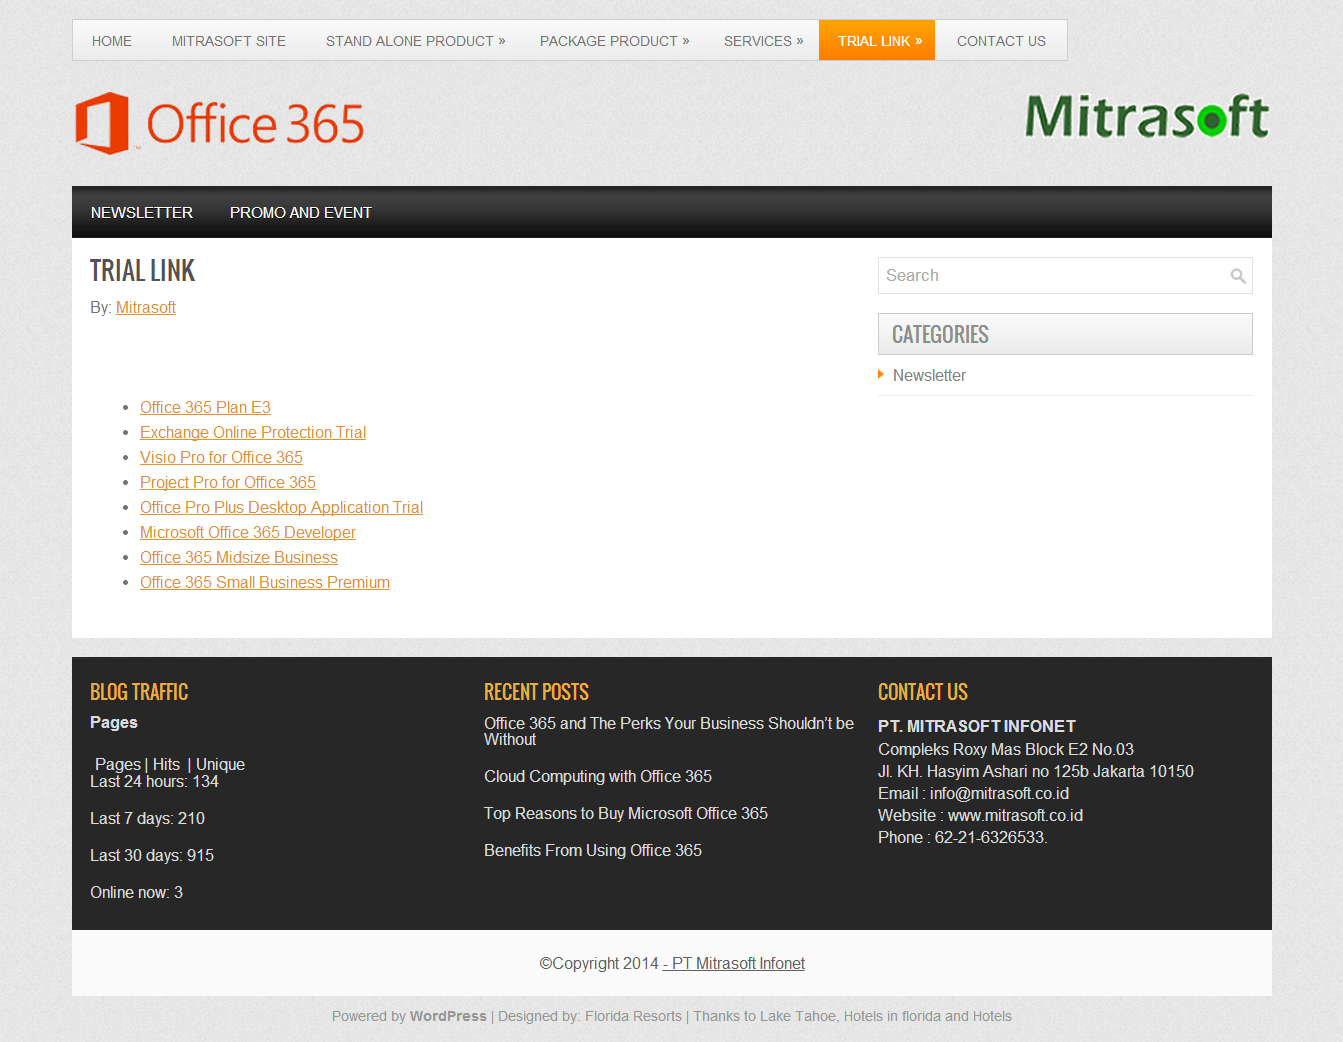 Mitrasoft Download #Office365 trial: Office 365 Plan E3, Office 365 ...